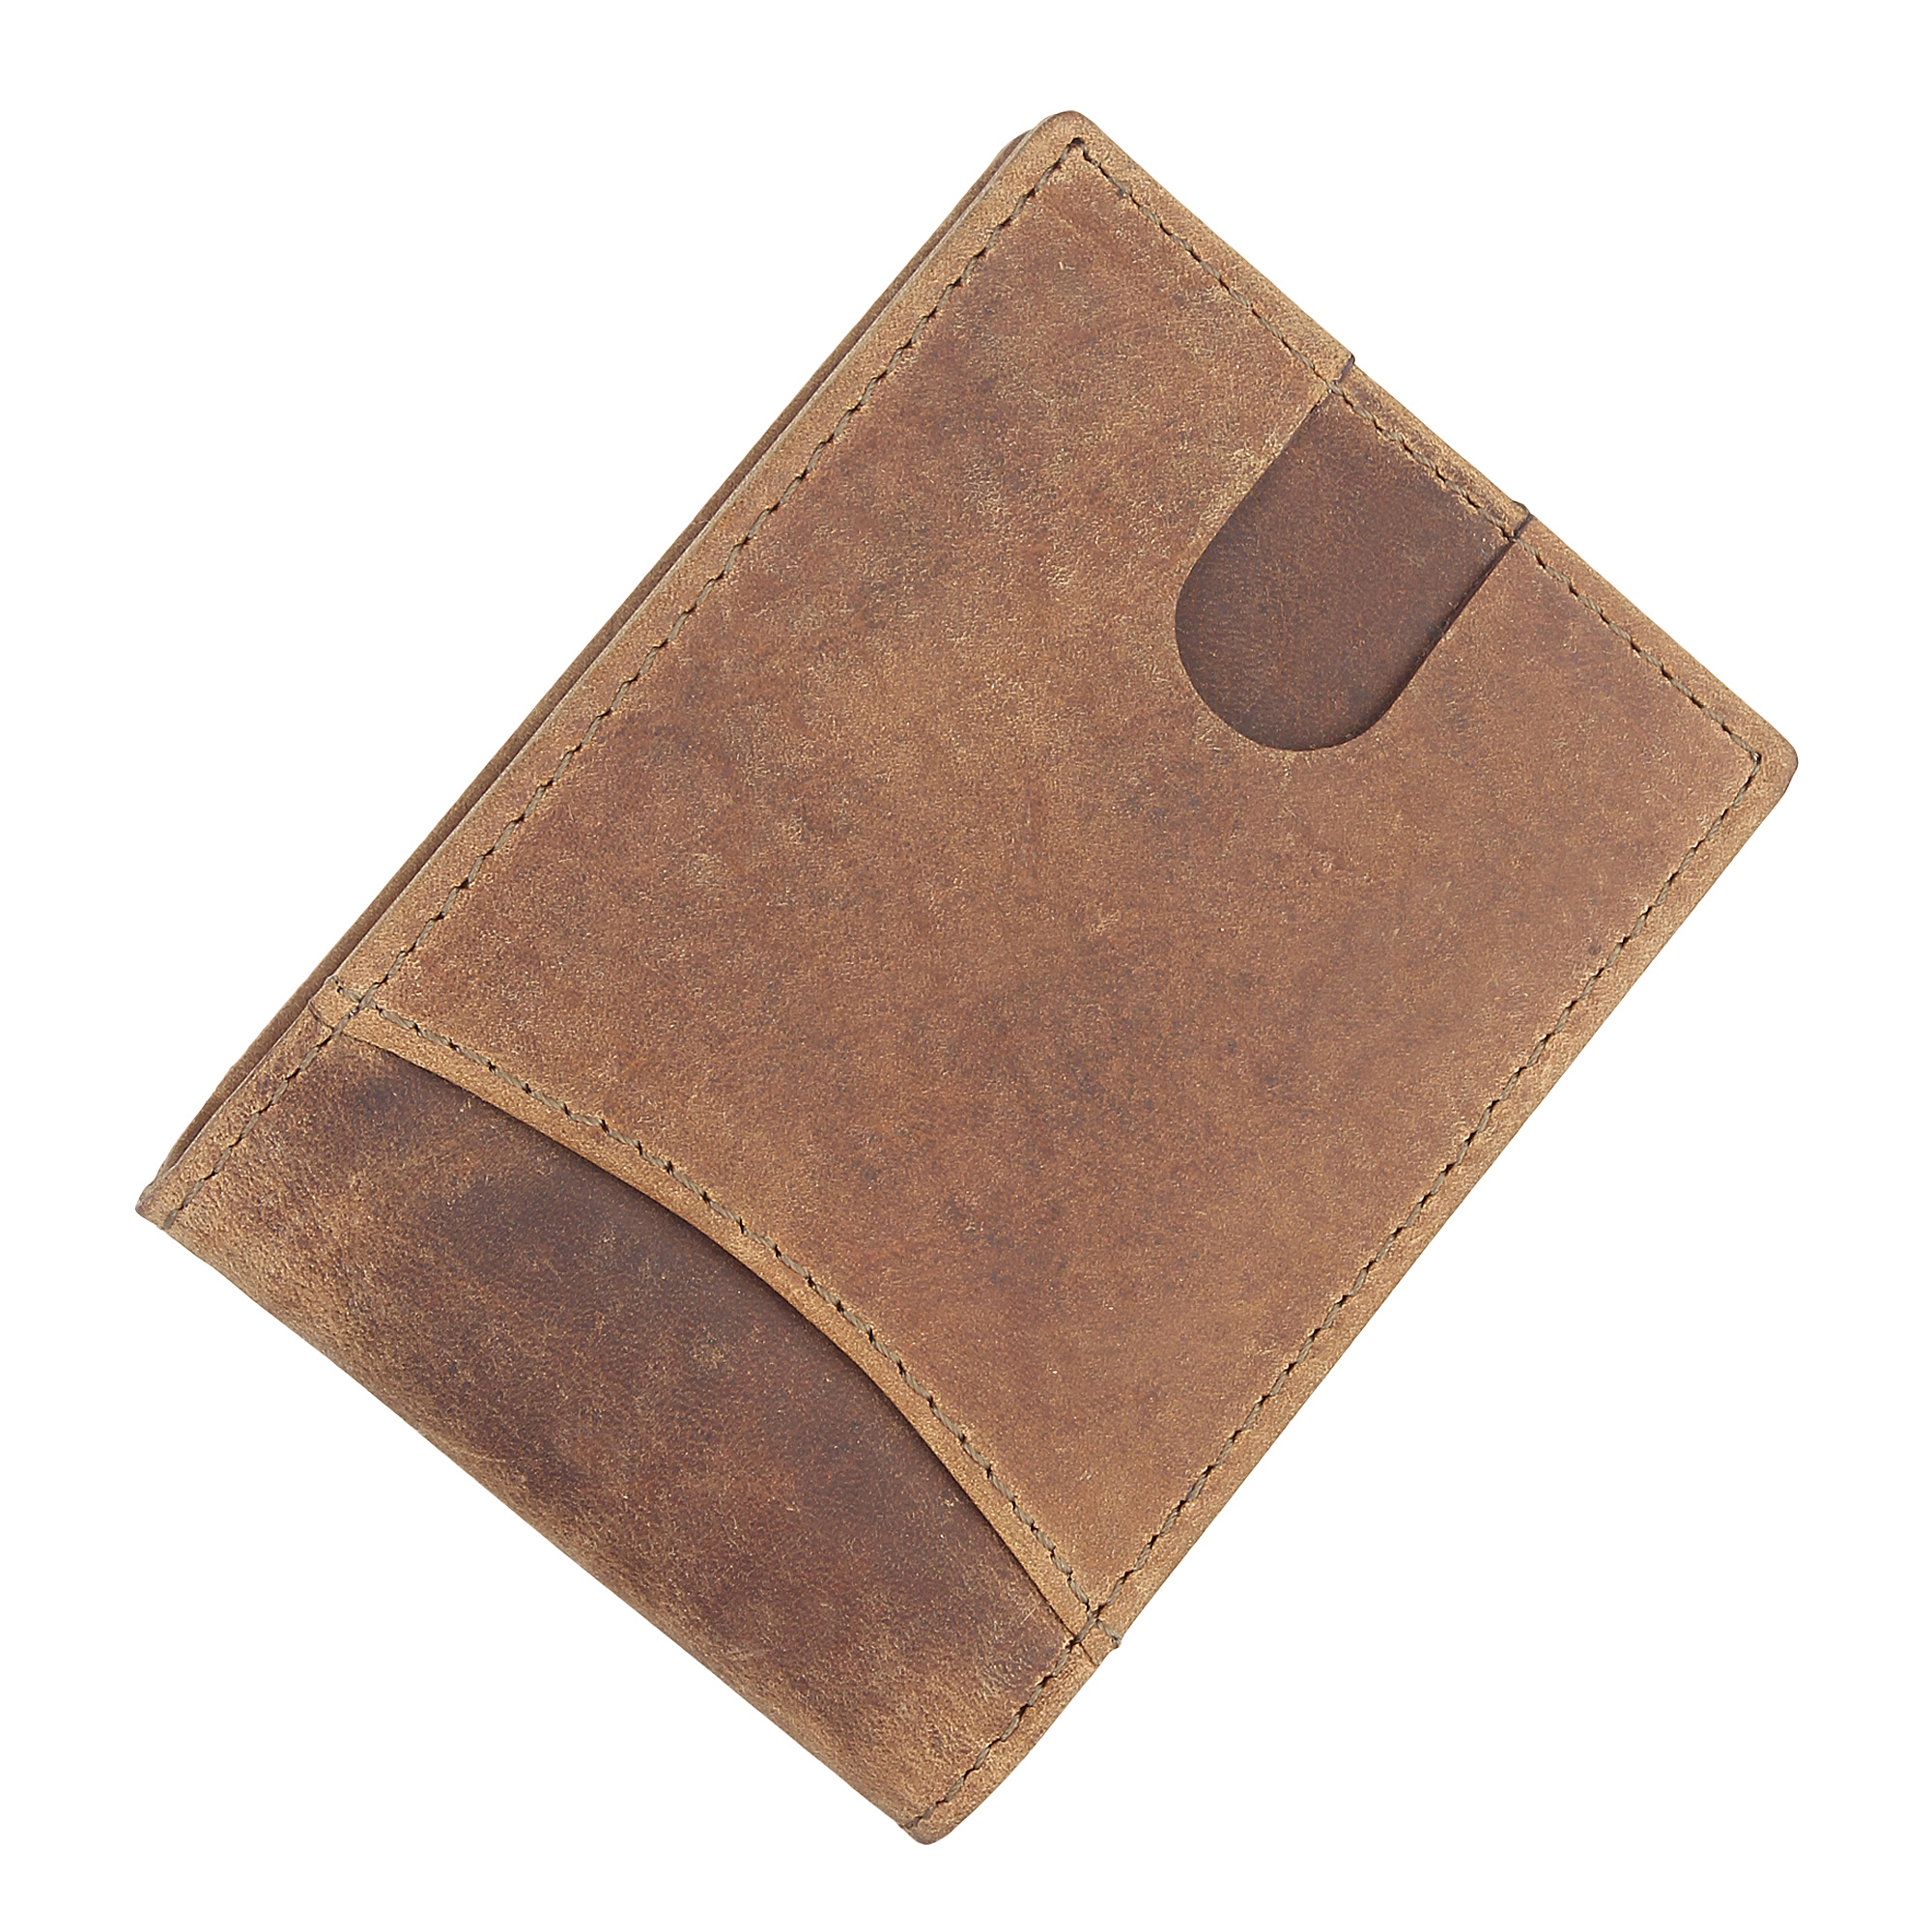 Leather Money Clip Wallet Manufacturers In Iraq, Money Clip Wallet Suppliers In Iraq, Money Clip Wallet Wholesalers In Iraq, Money Clip Wallet Traders In Iraq